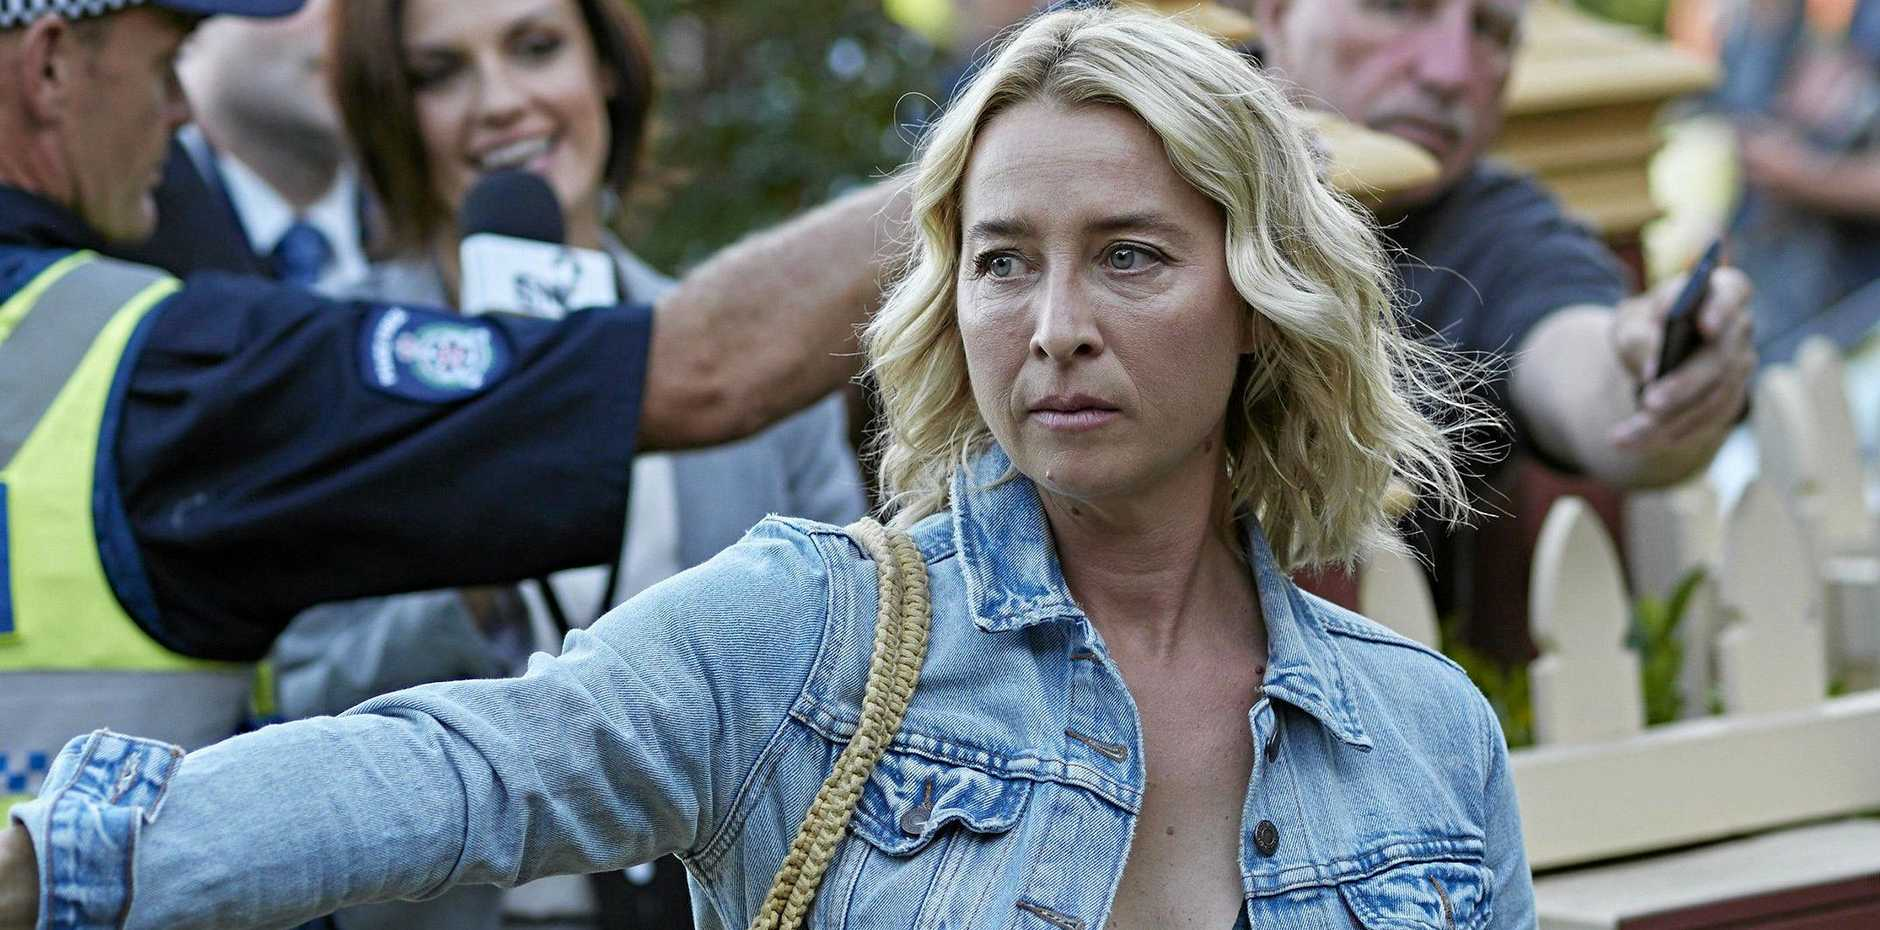 Asher Keddie as Alexandra in a scene from the movie The Cry.